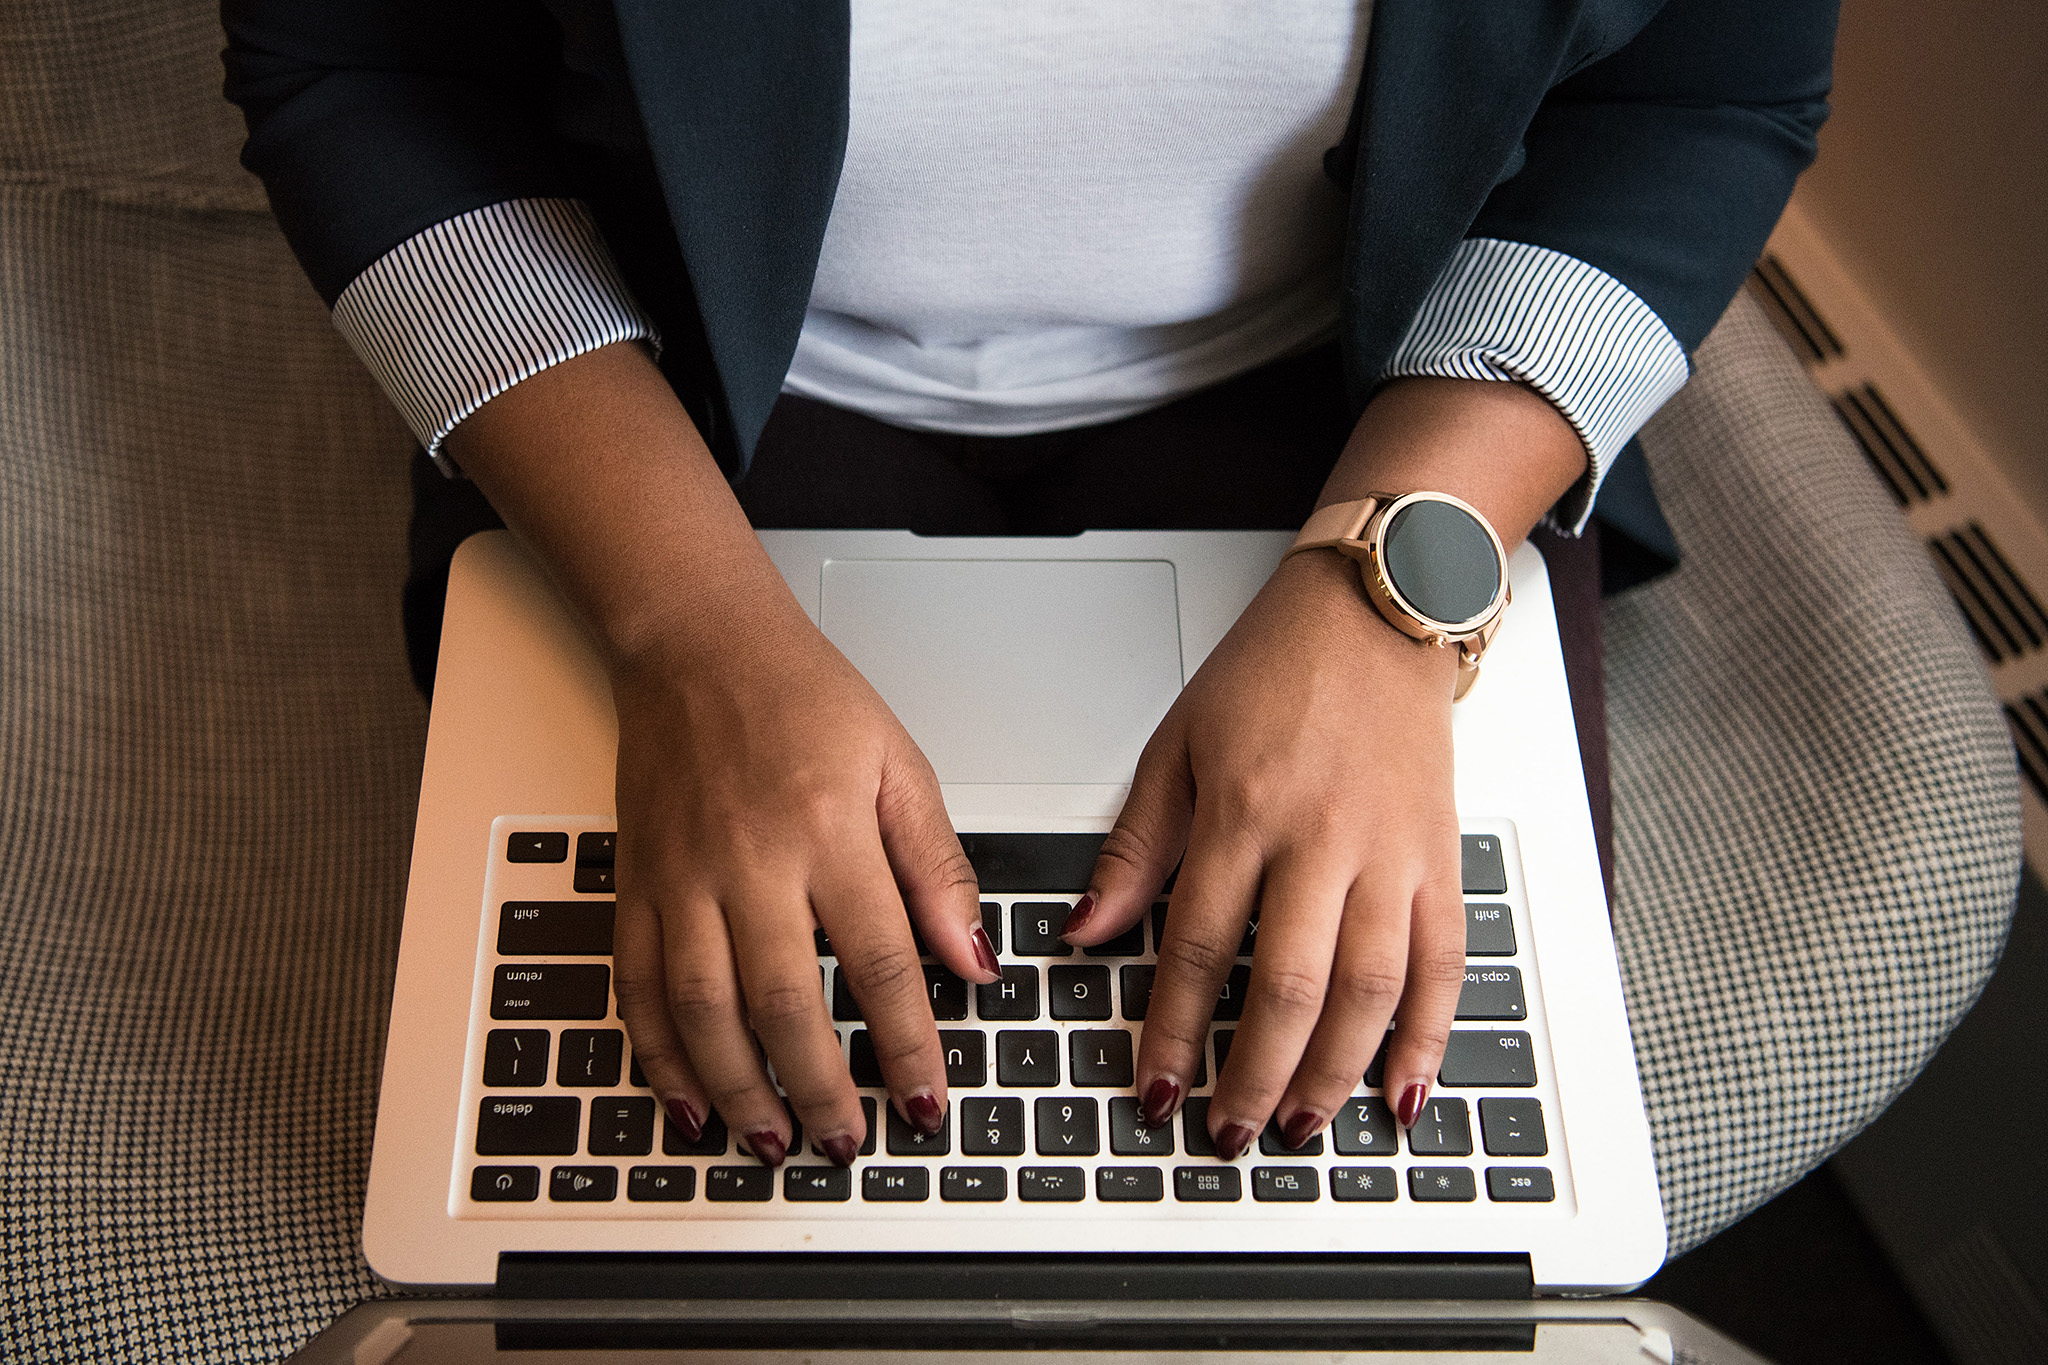 Closeup of woman's hands typing on a laptop keyboard, representing an activist blogging about social justice politics